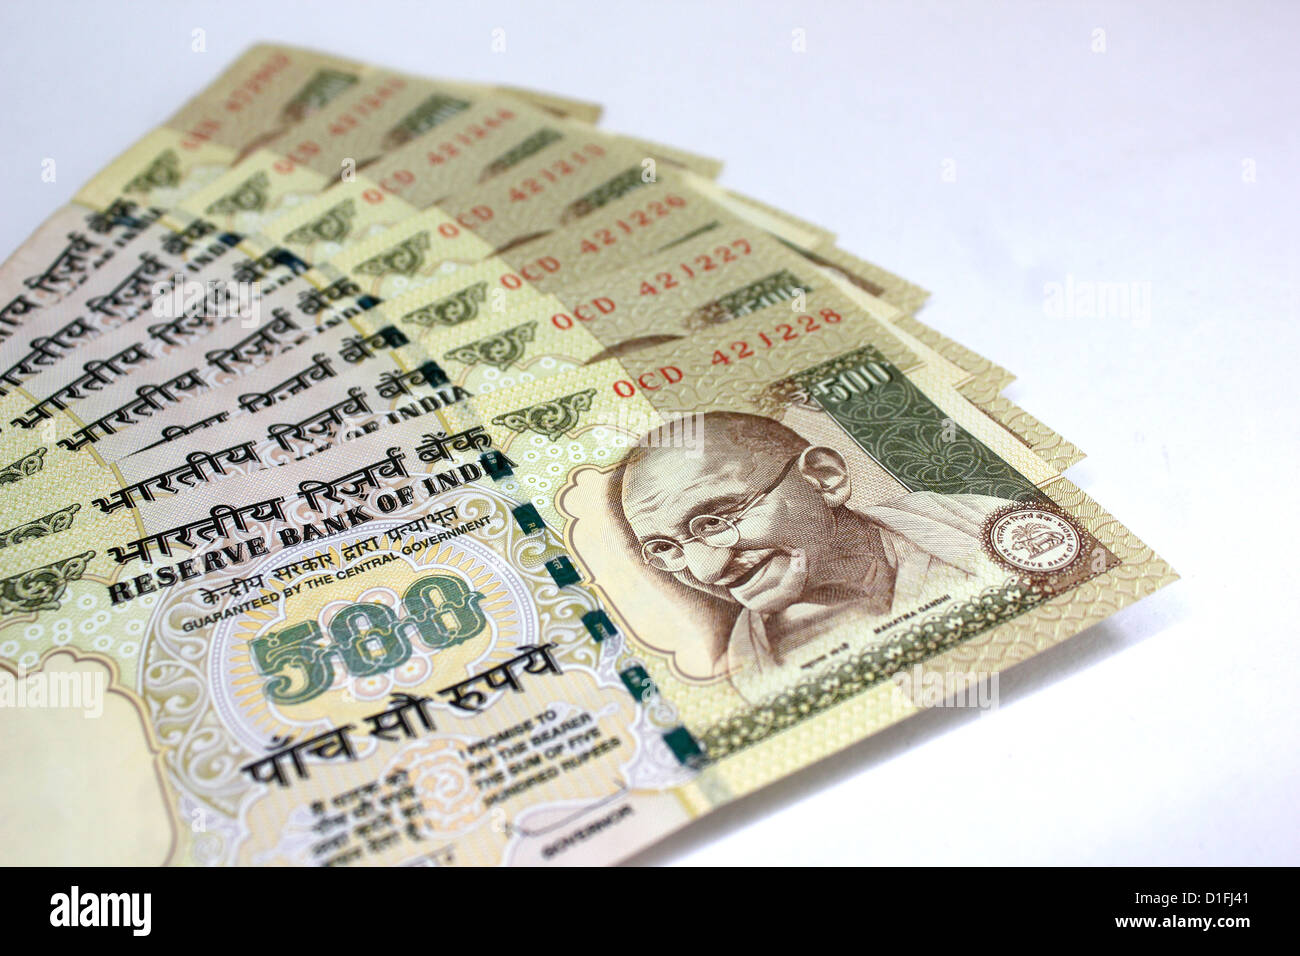 Indian currency A fan of 500 rupee notes in white background - Stock Image